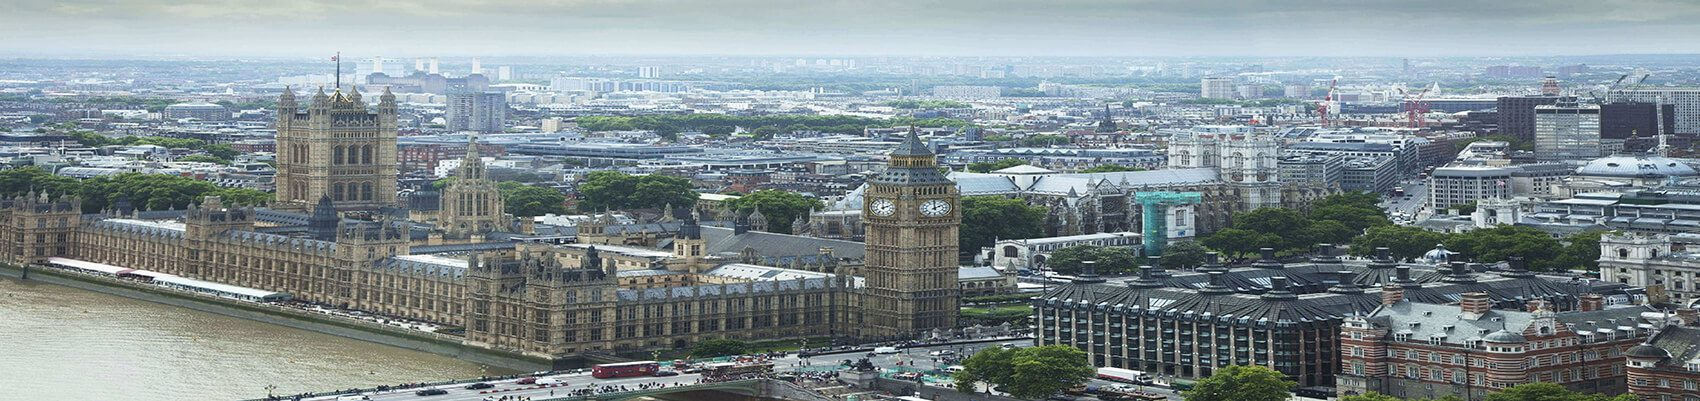 Tourism in London: The best Tourism places in London